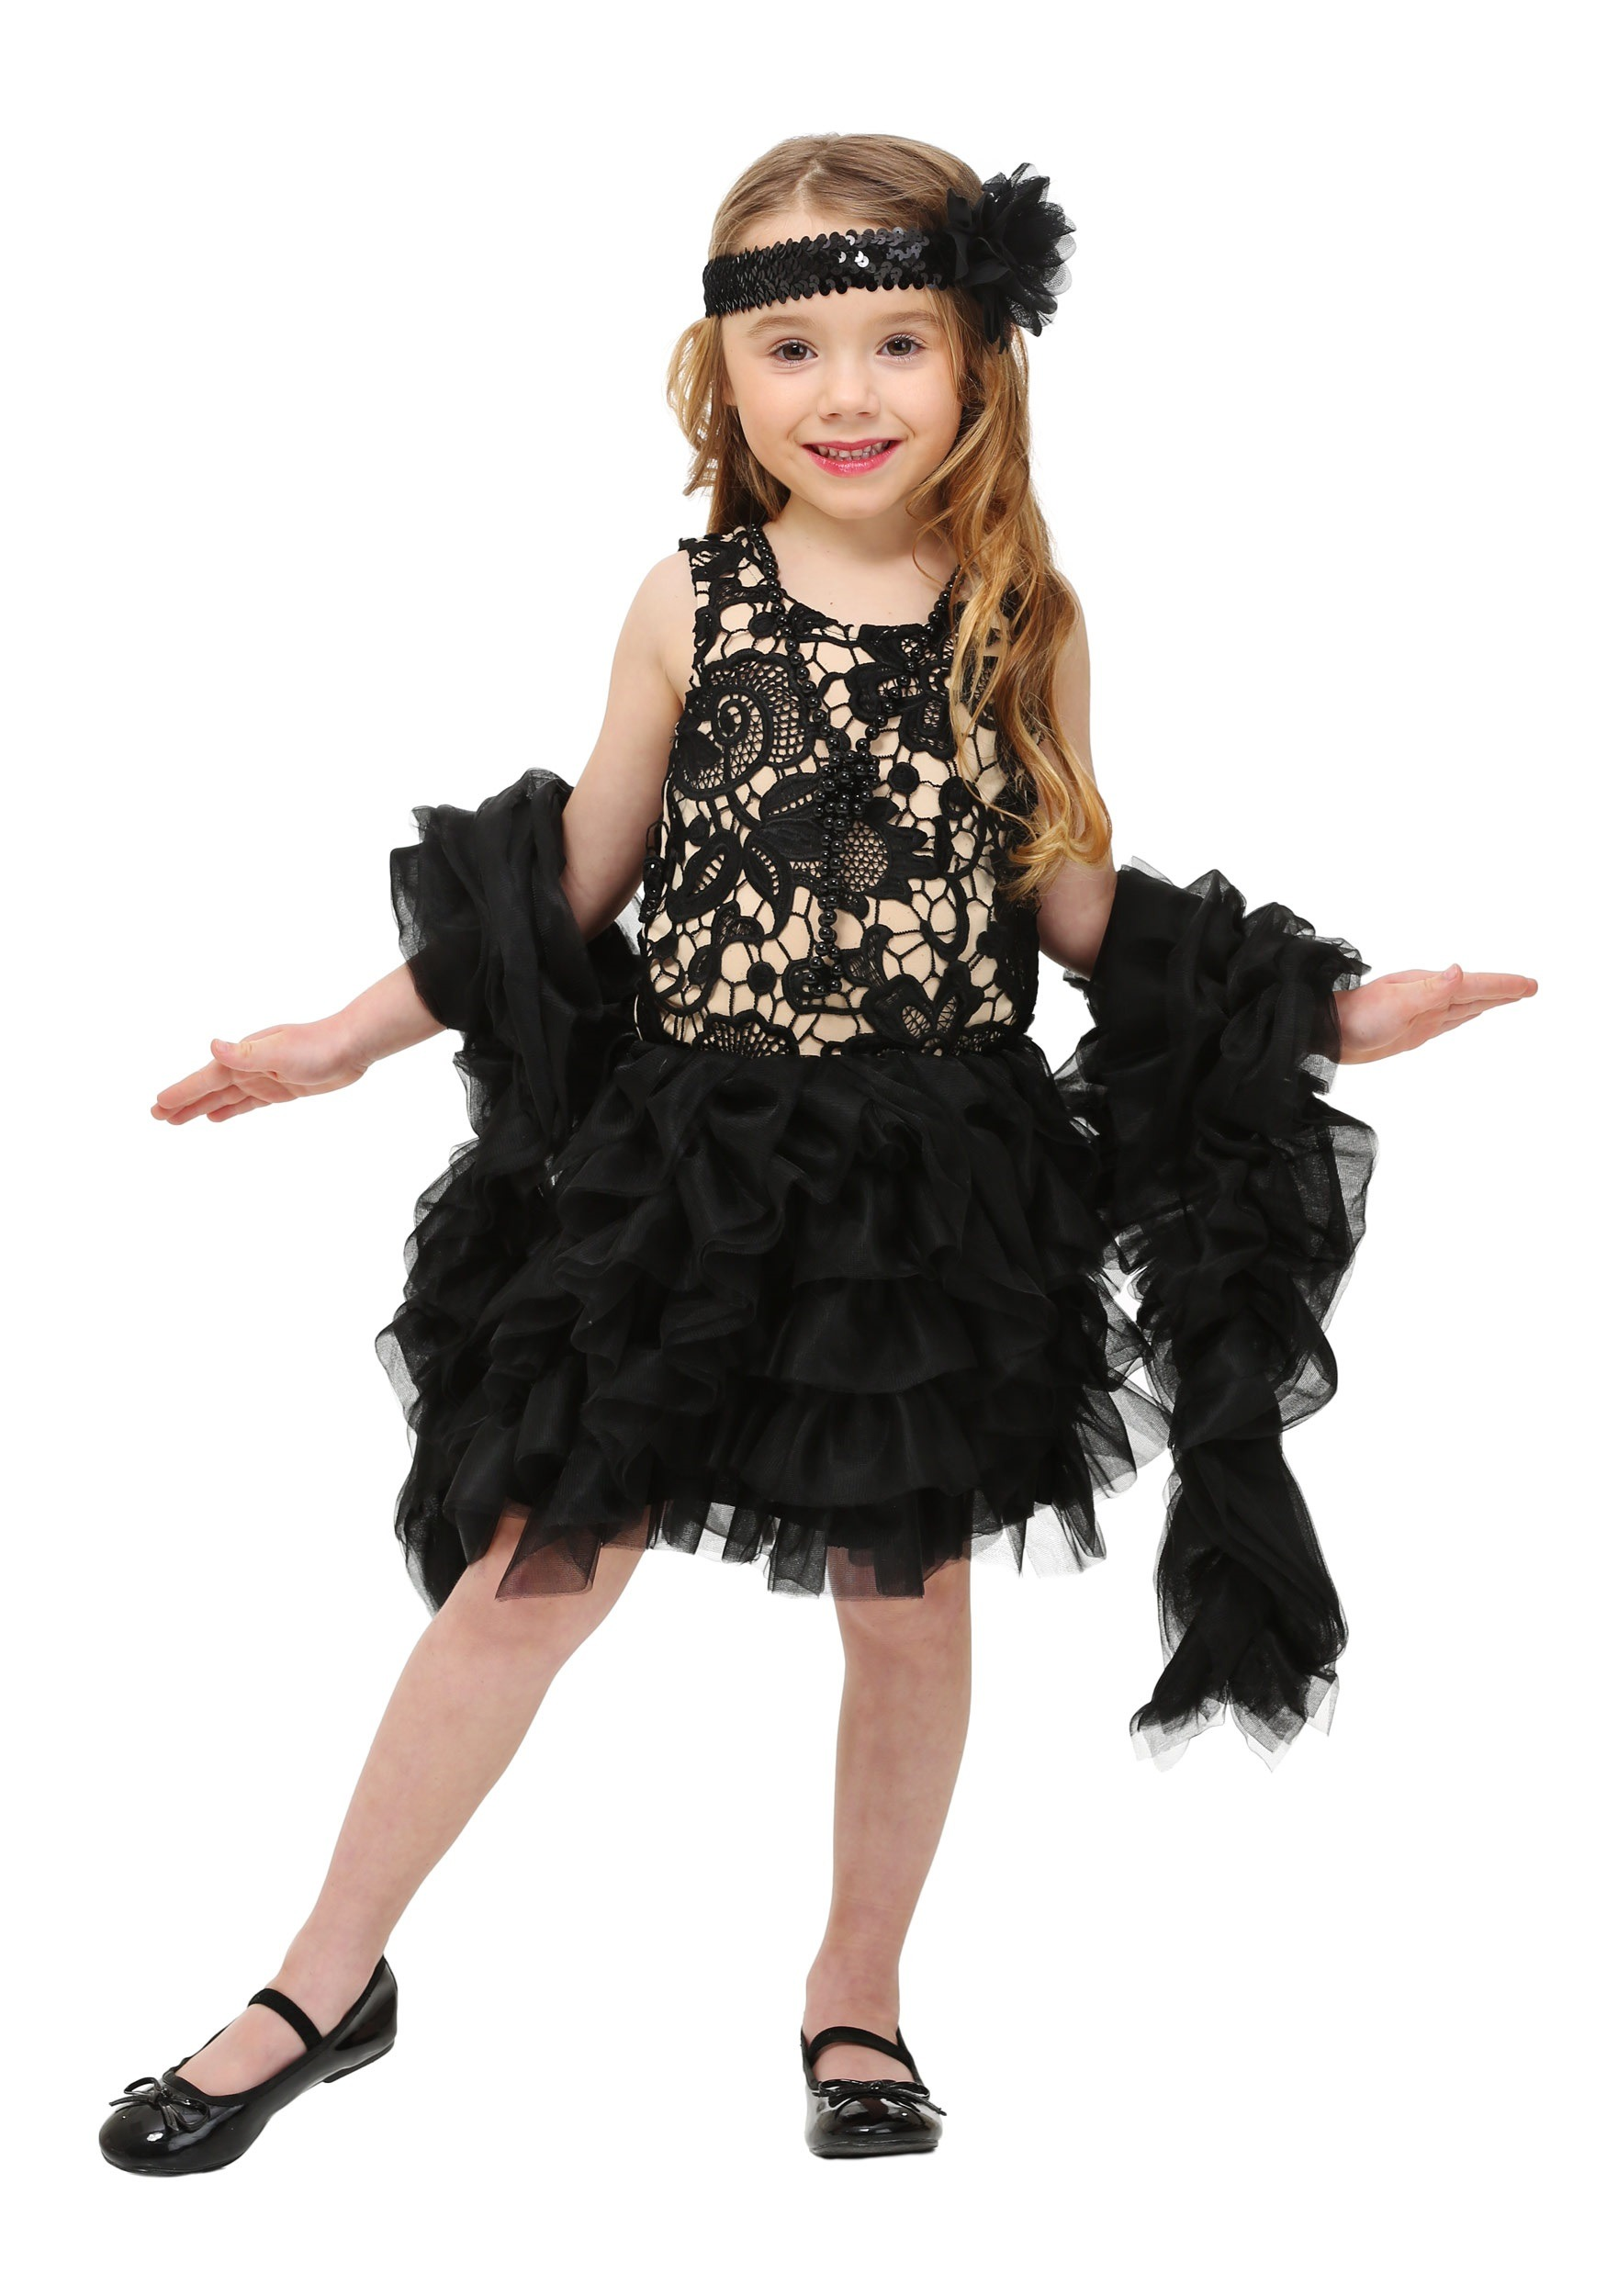 Baby Black Dress Up Shoes